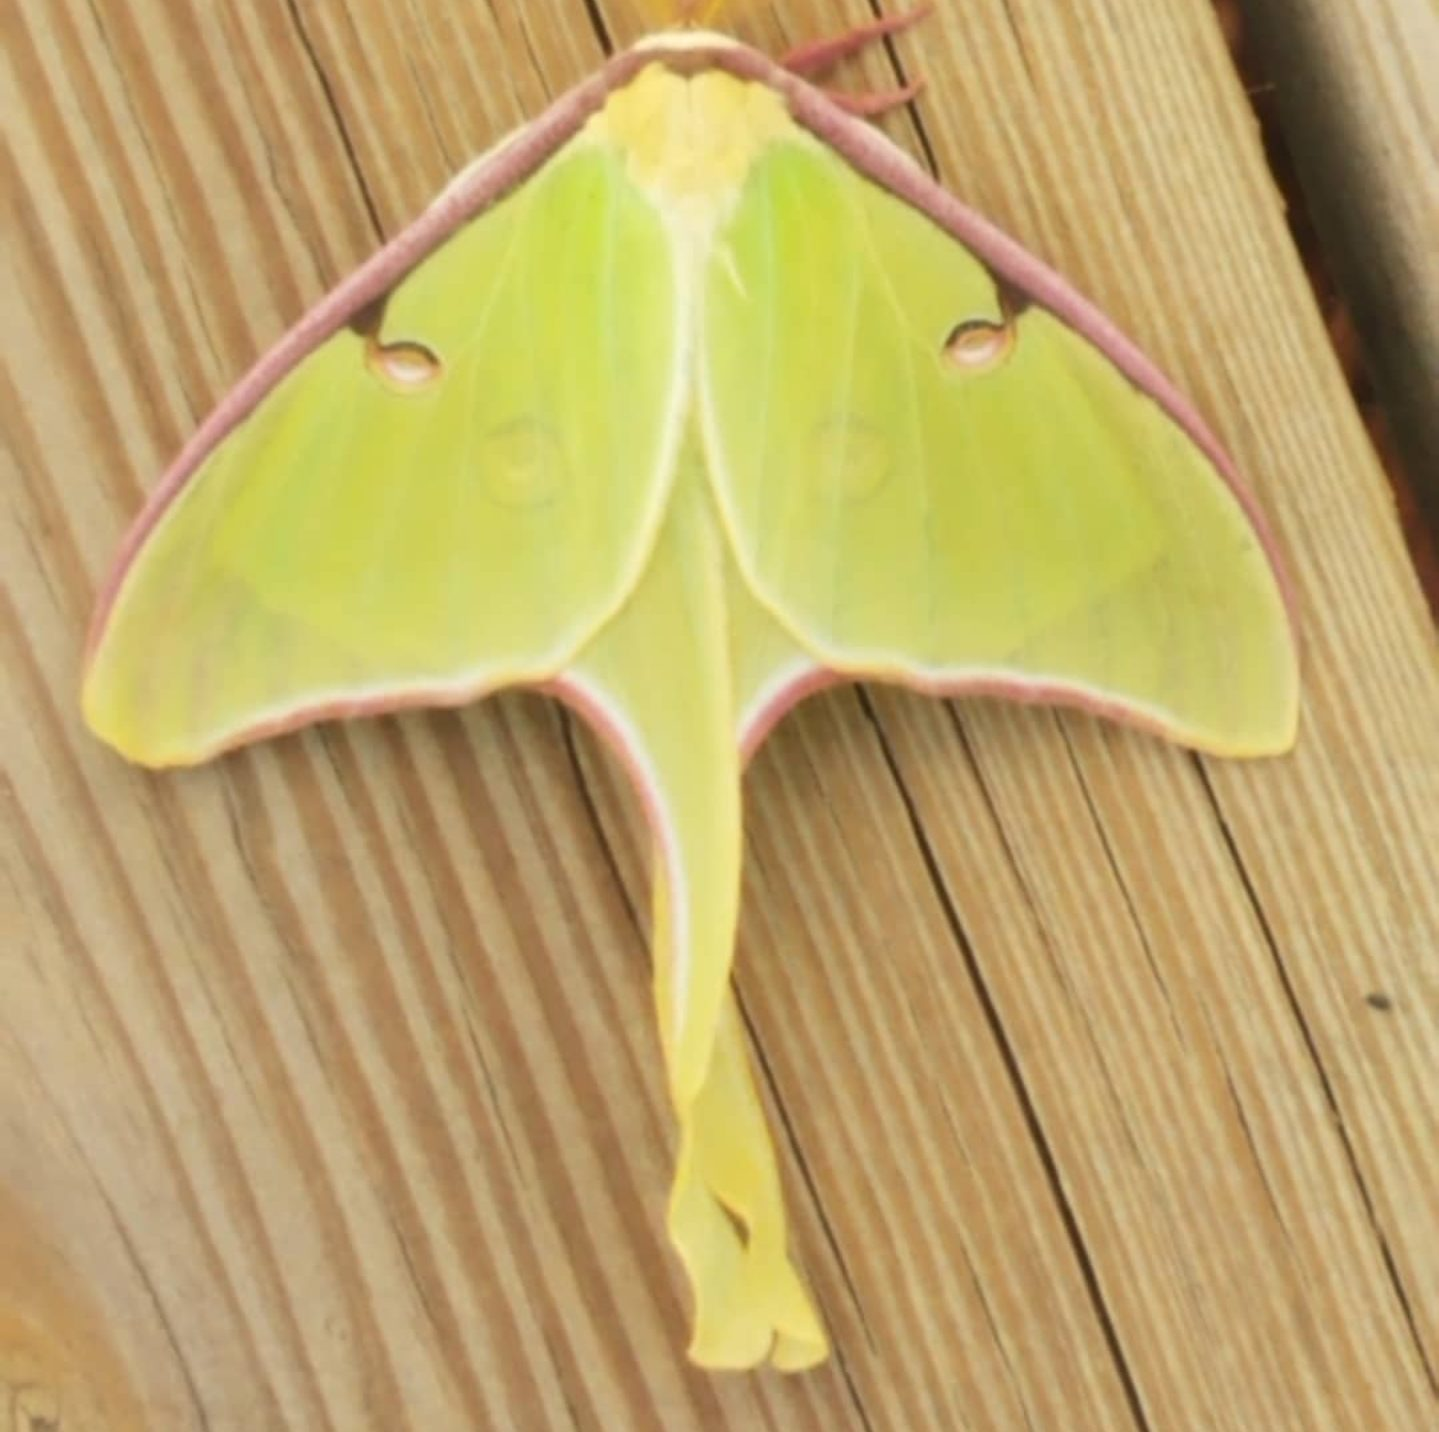 Luna moth photo by Bruce E Thornton